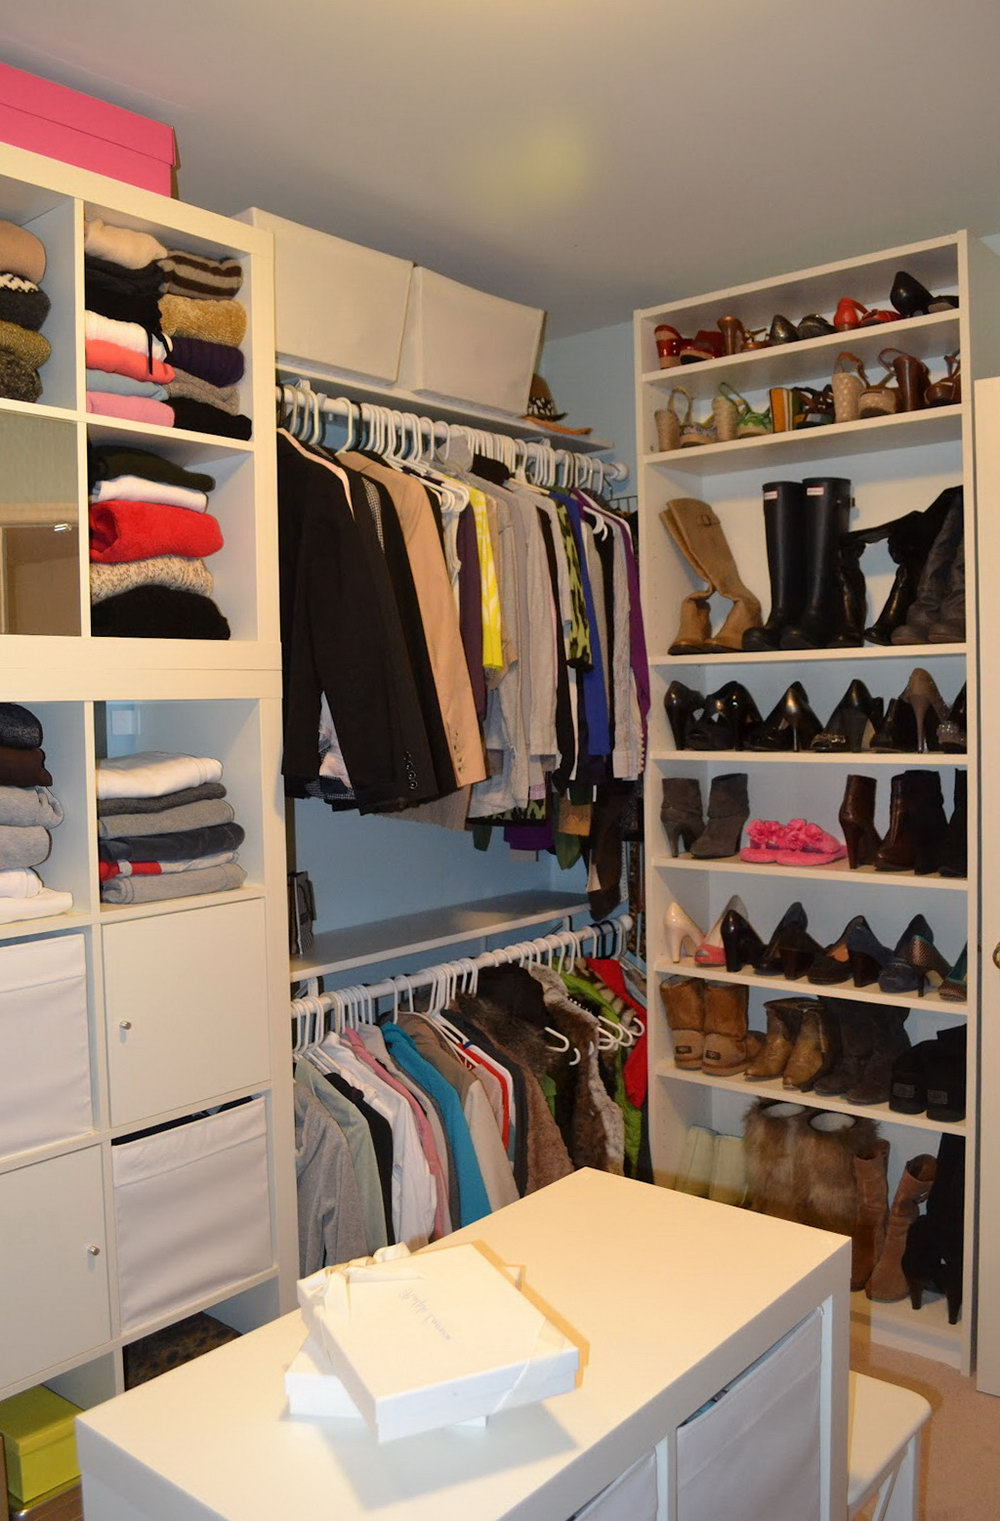 Build Closet Organizer | Diy Walk in Closet | Diy Walk in Closet on A Budget